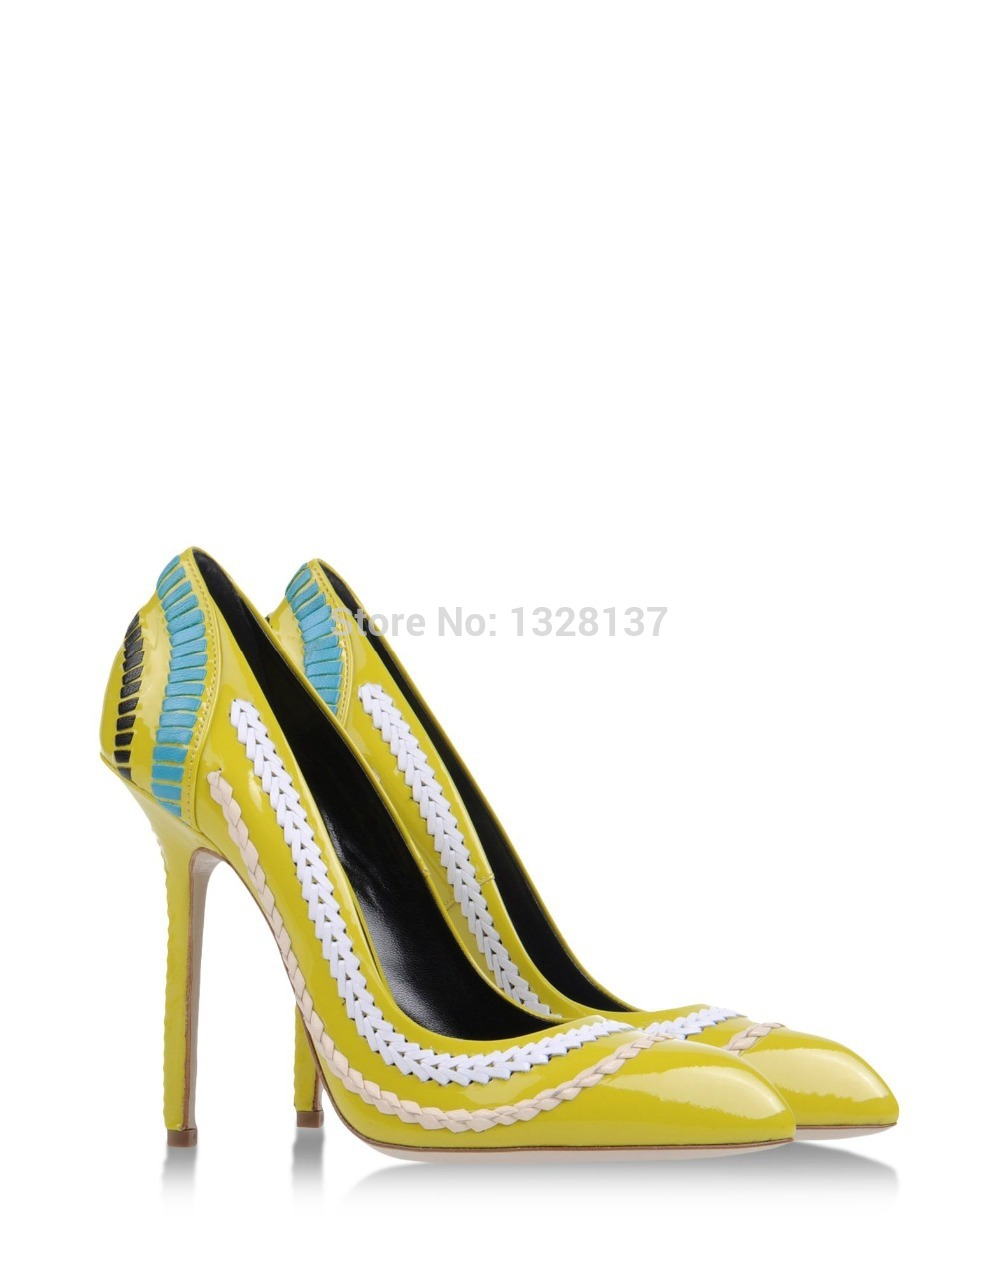 Patent Yellow Heels